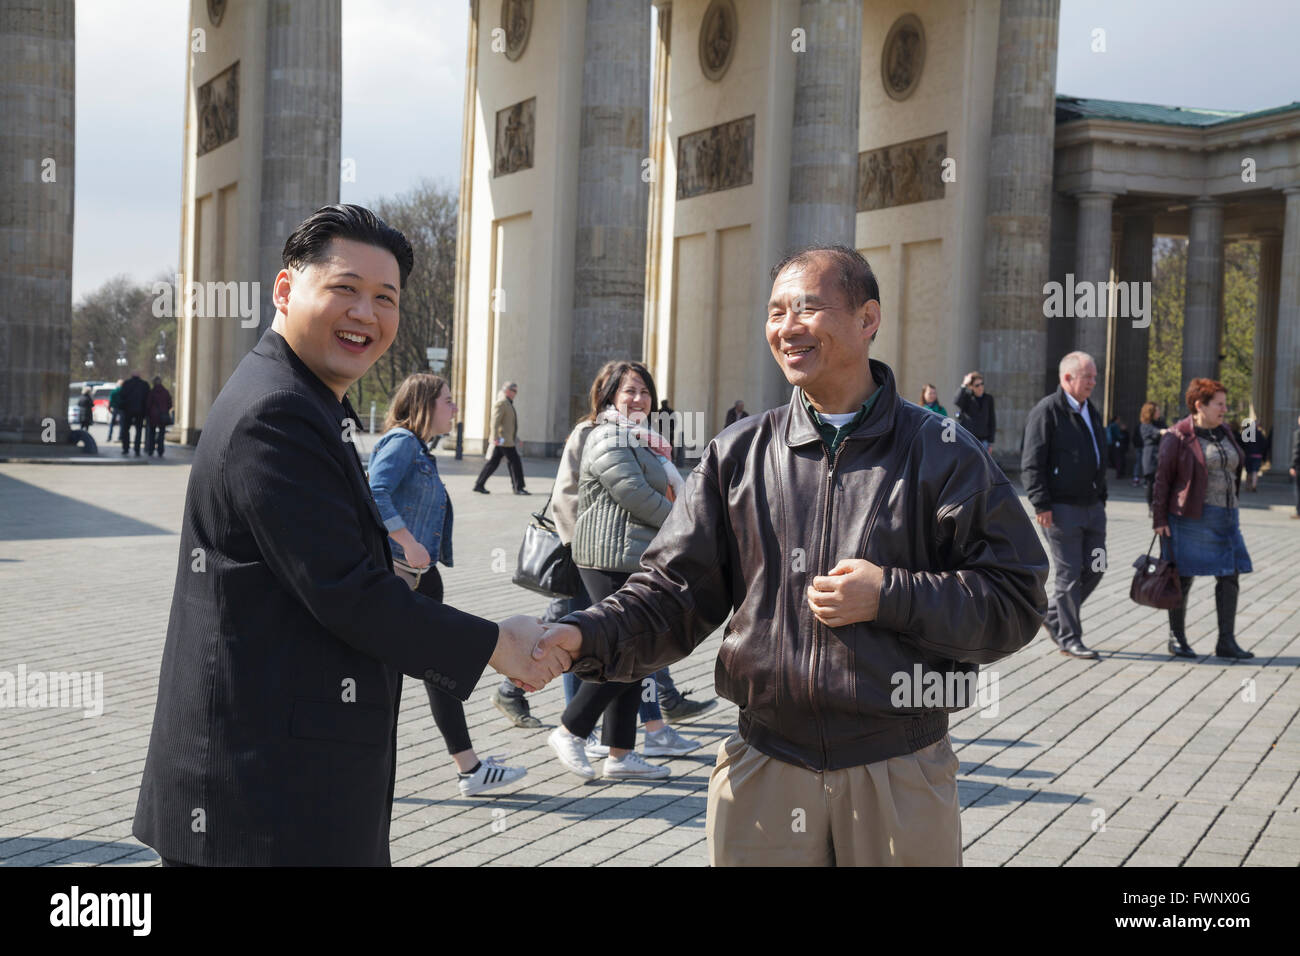 https://i1.wp.com/c8.alamy.com/comp/FWNX0G/berlin-germany-6th-april-2016-kim-jong-un-impersonator-howard-x-from-FWNX0G.jpg